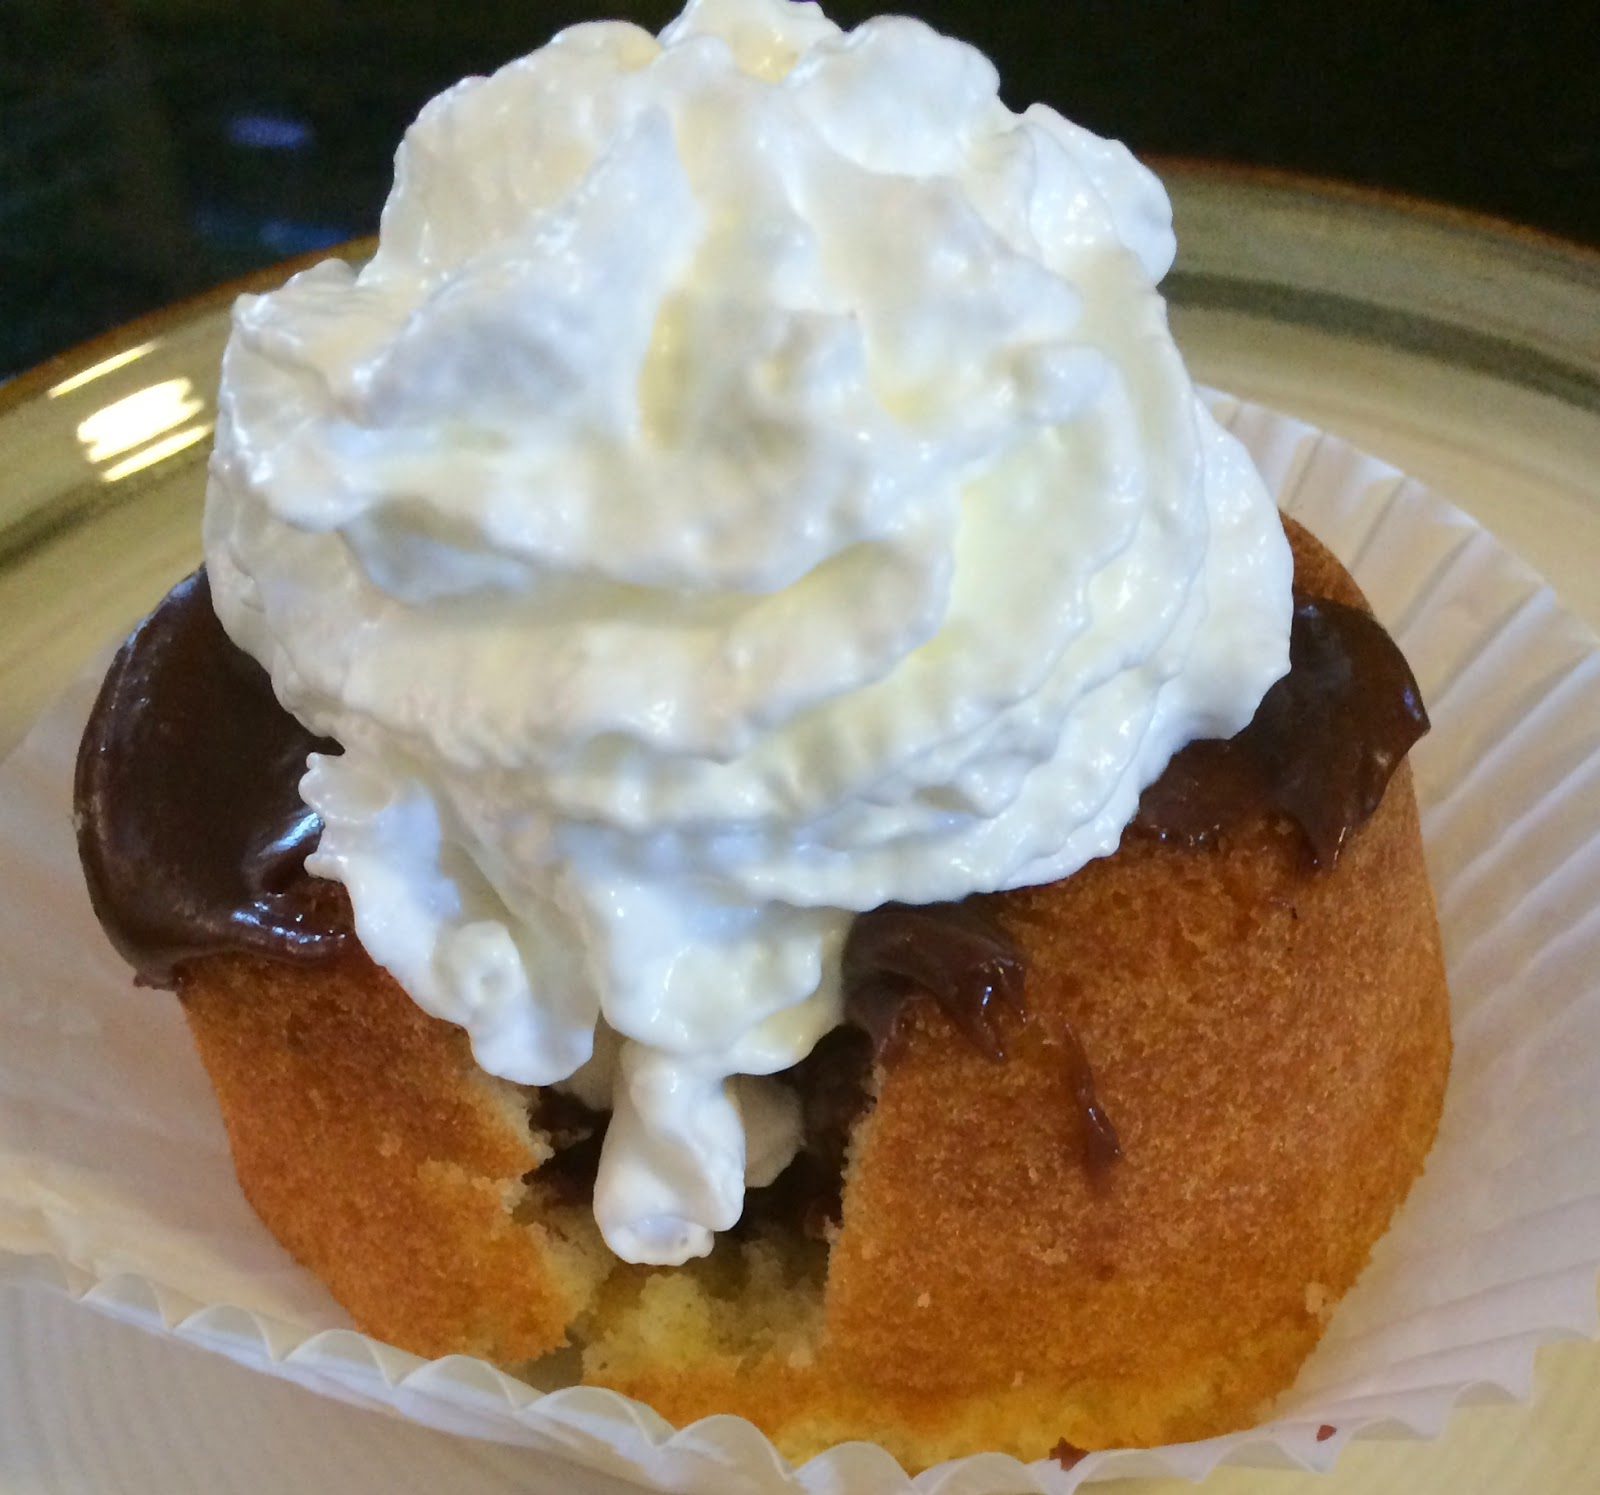 ... History with Joyce White: Kossuth Cakes: An Historic Maryland Dessert